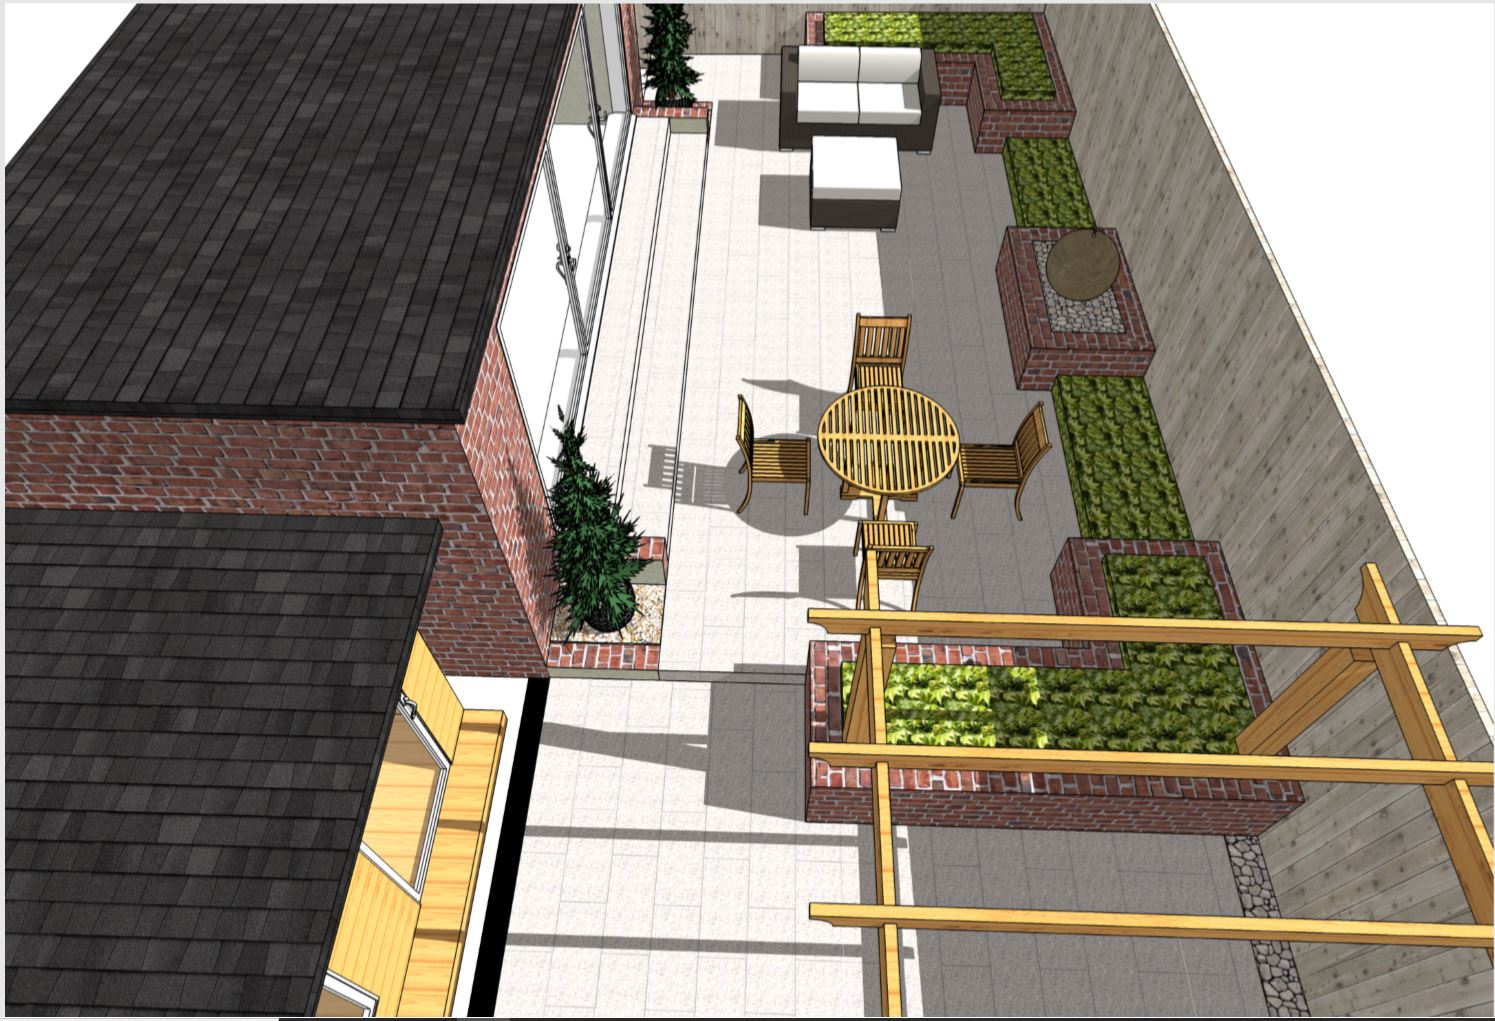 1. Overview, colour concept plan-1 for a rear garden in Wakefield